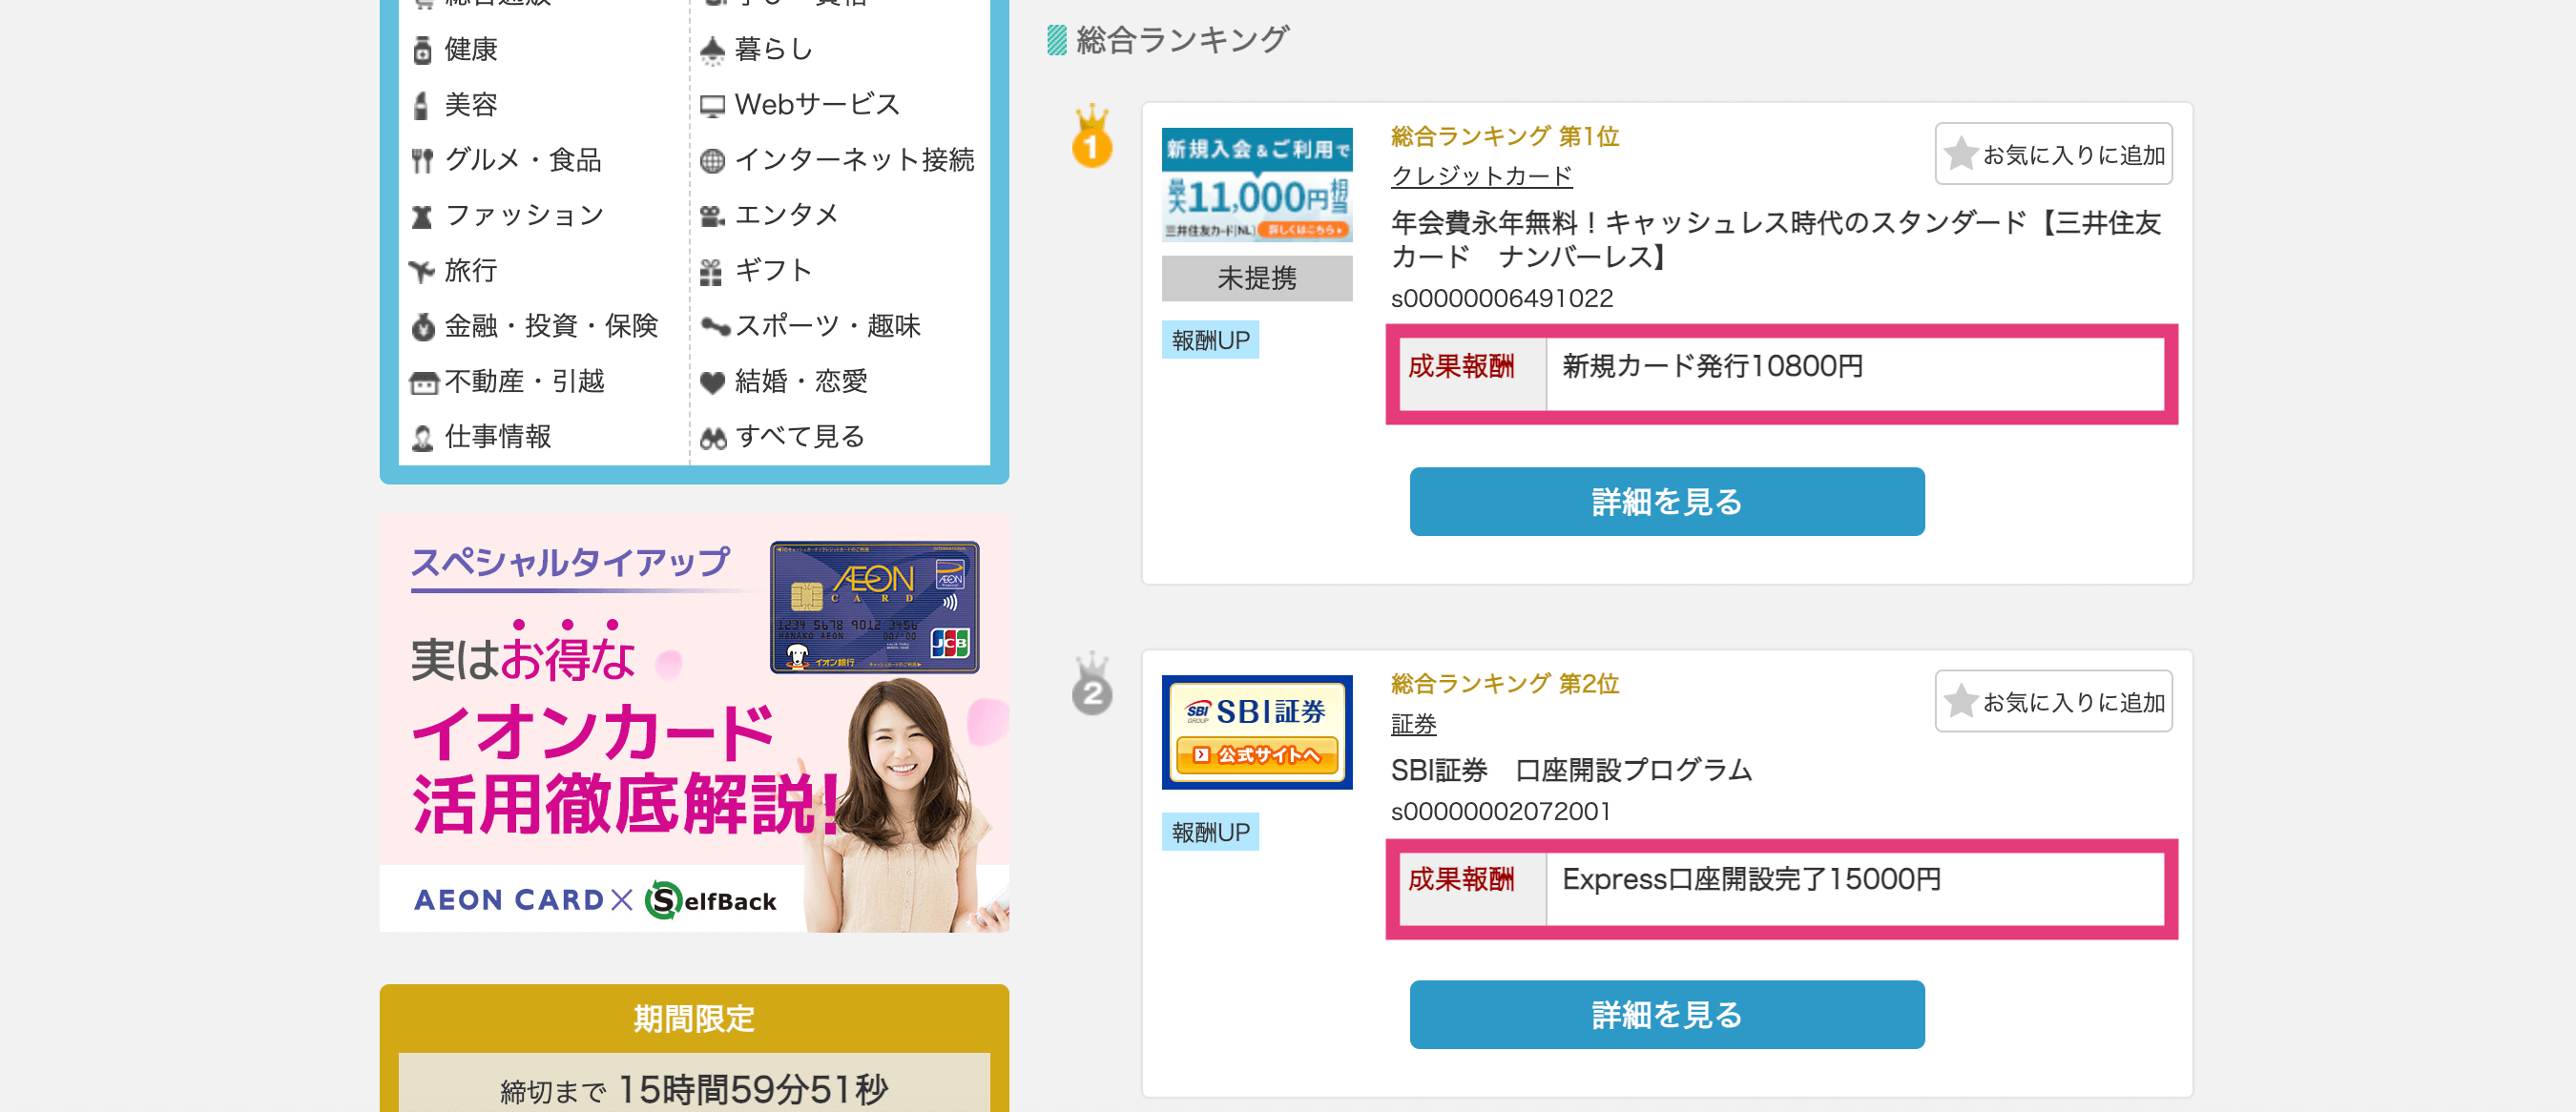 A8.net 自己アフィリエイト1